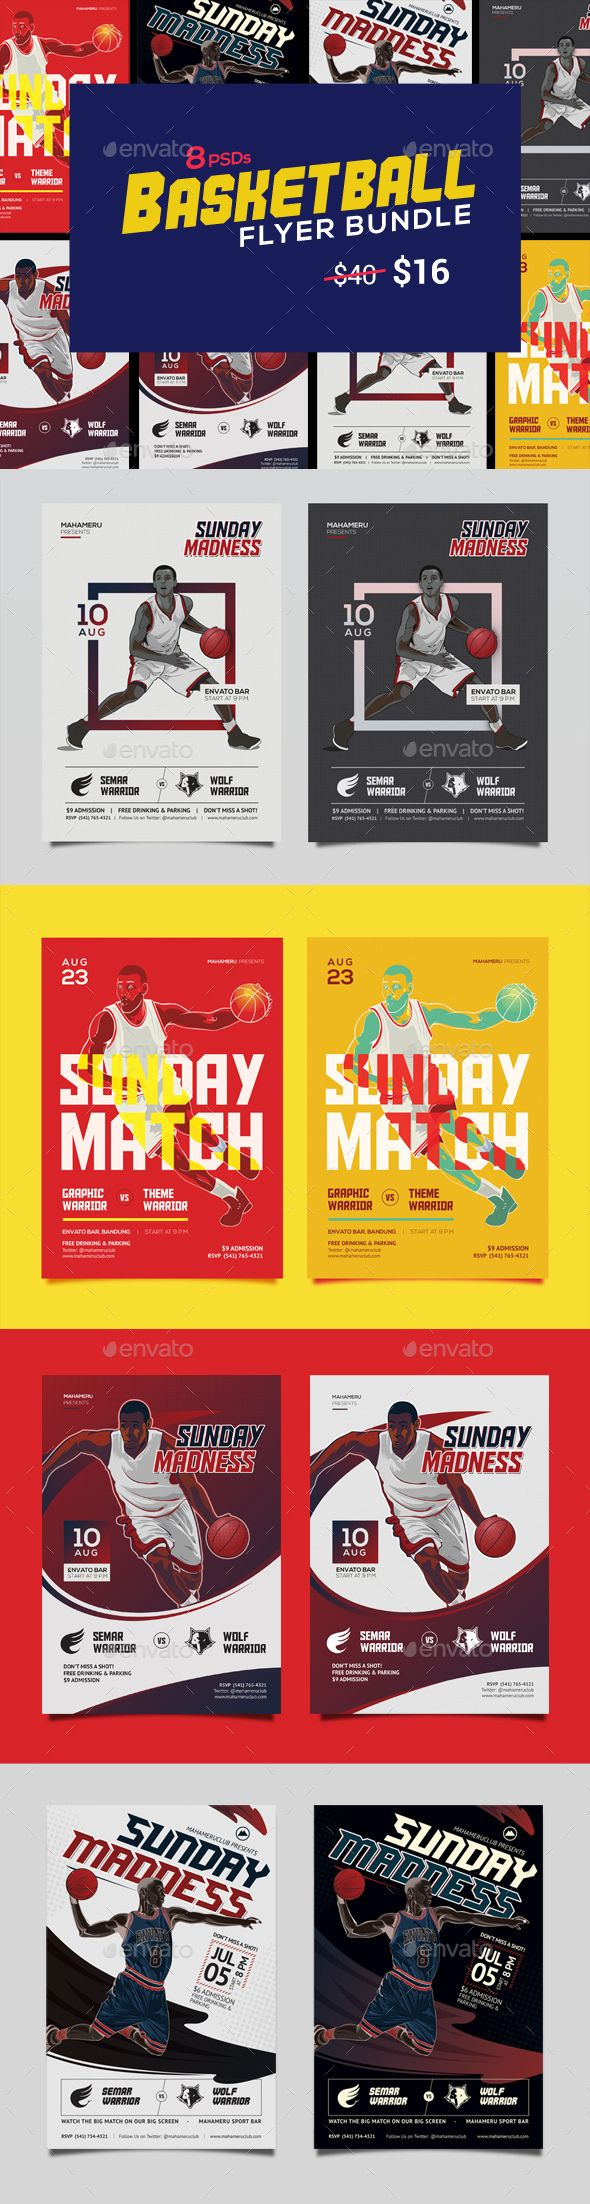 Basketball Match Flyer Bundle - 60% OFF